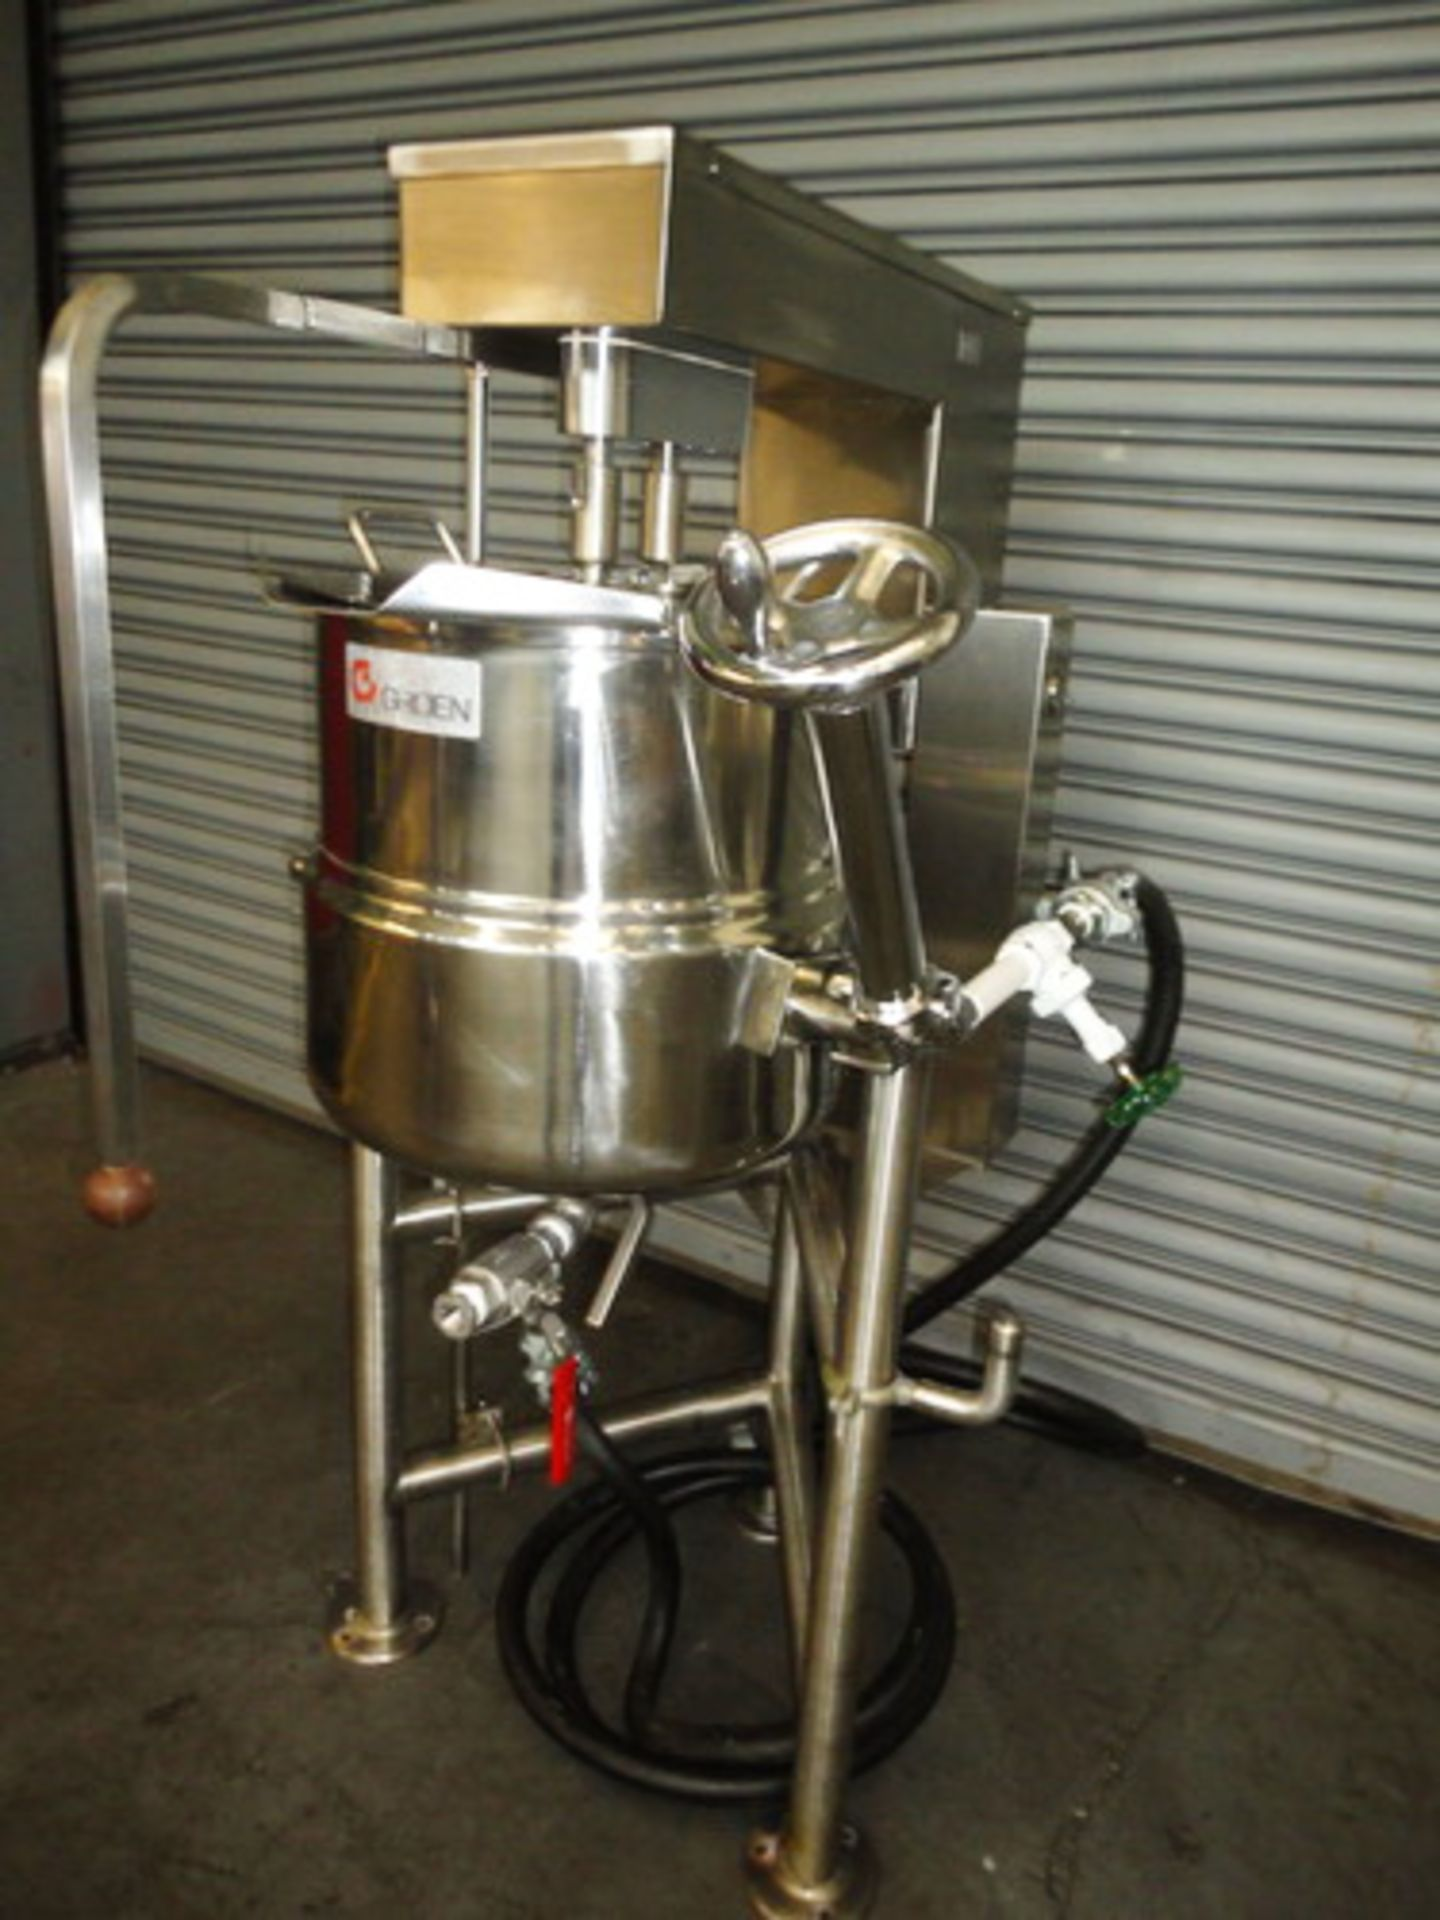 Lot 109 - Groen 10 Gallons (40 Quarts) type 316SS SS Jacketed Double Motion Scraper Kettle